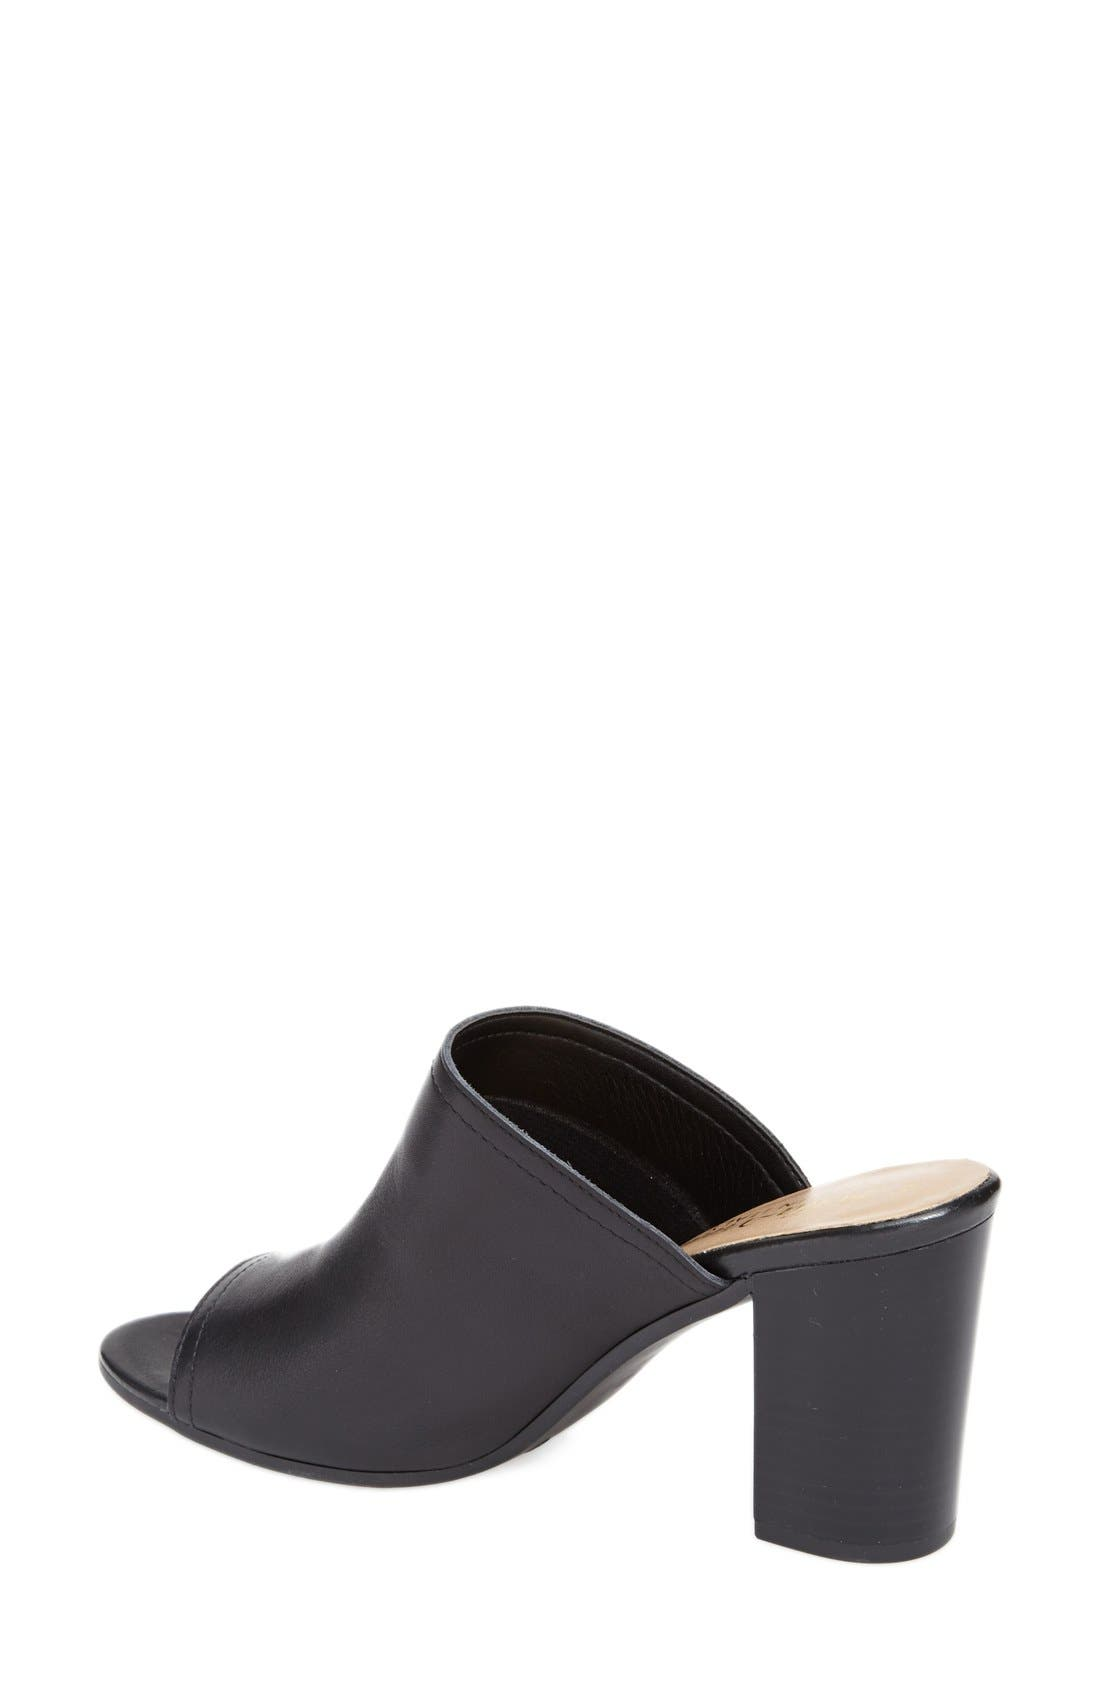 'Arno' Leather Mule,                             Alternate thumbnail 16, color,